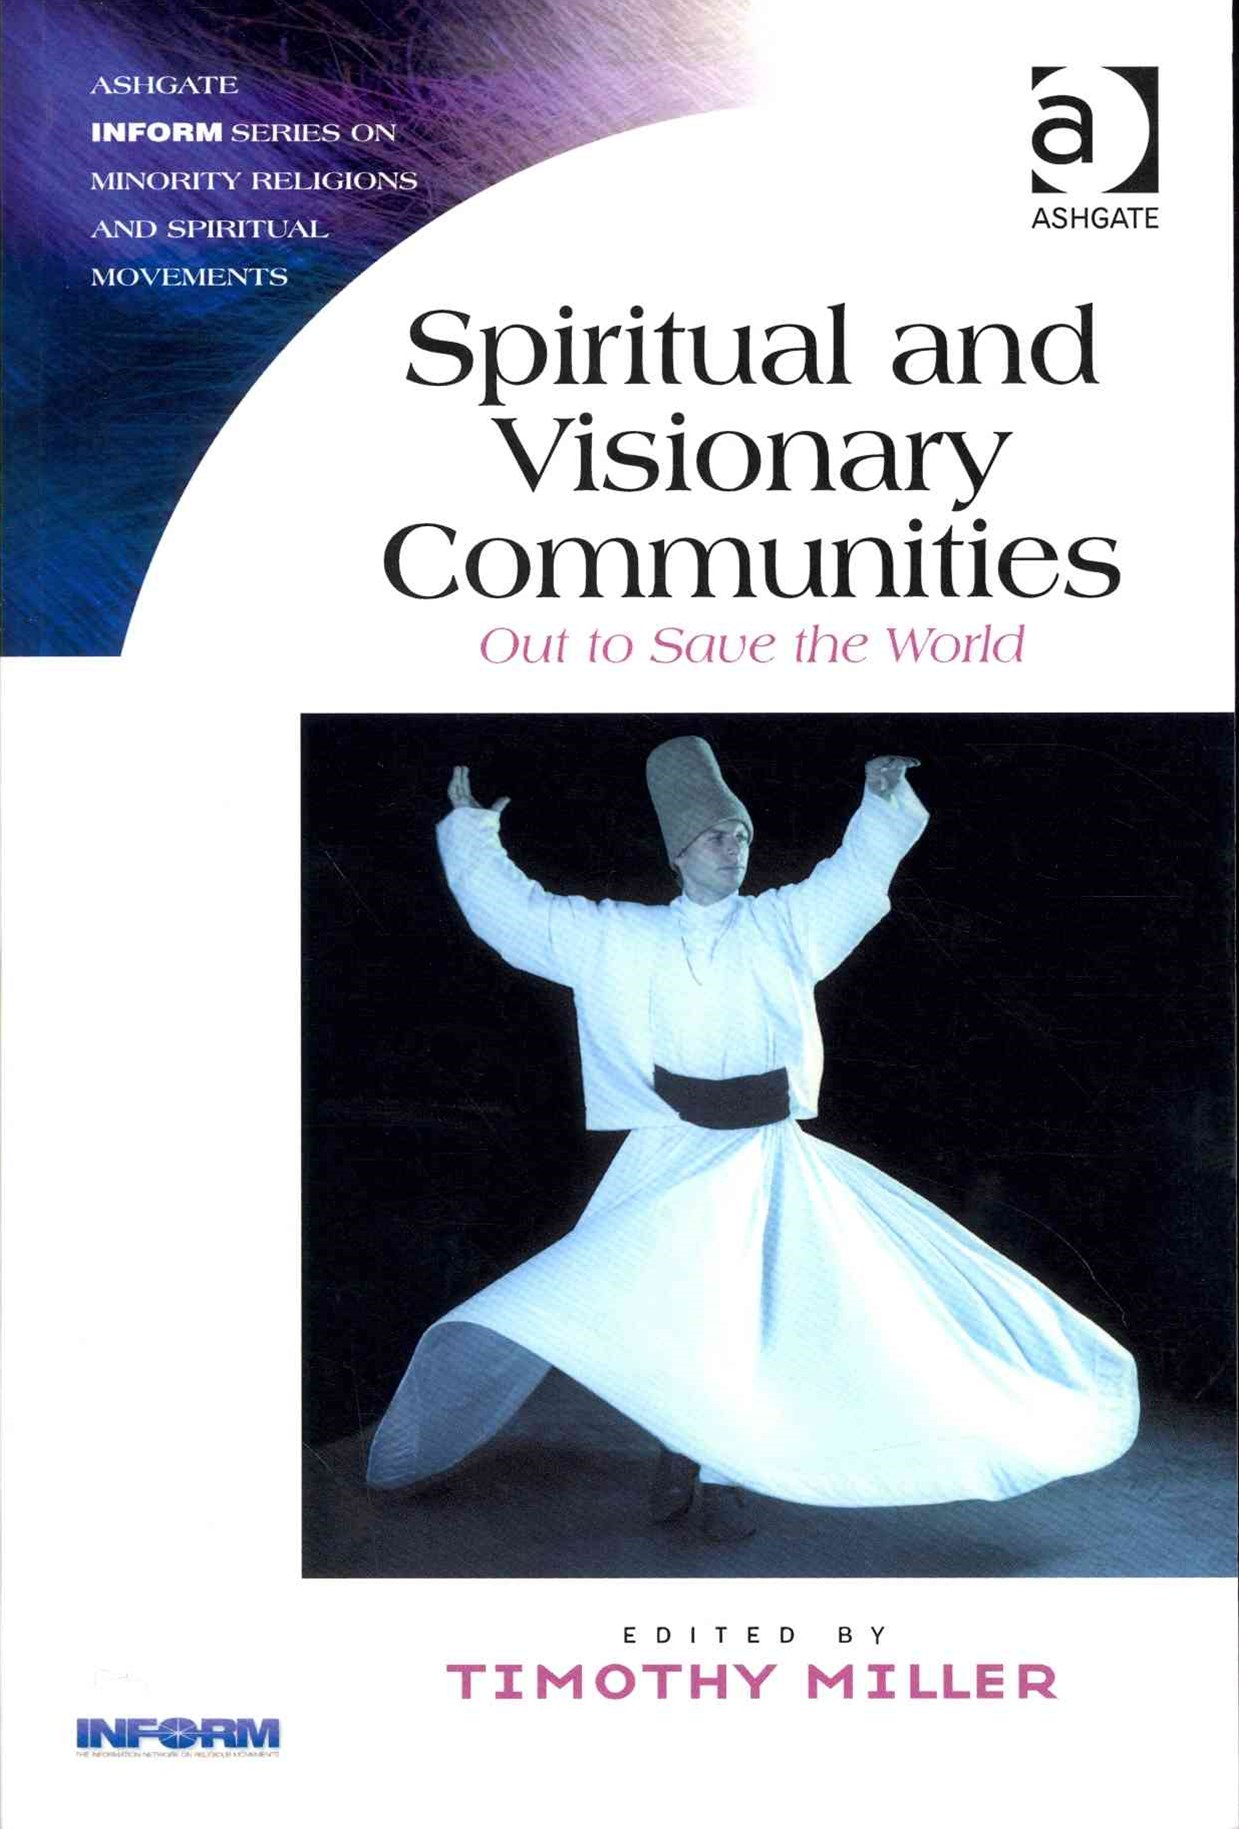 Spiritual and Visionary Communities